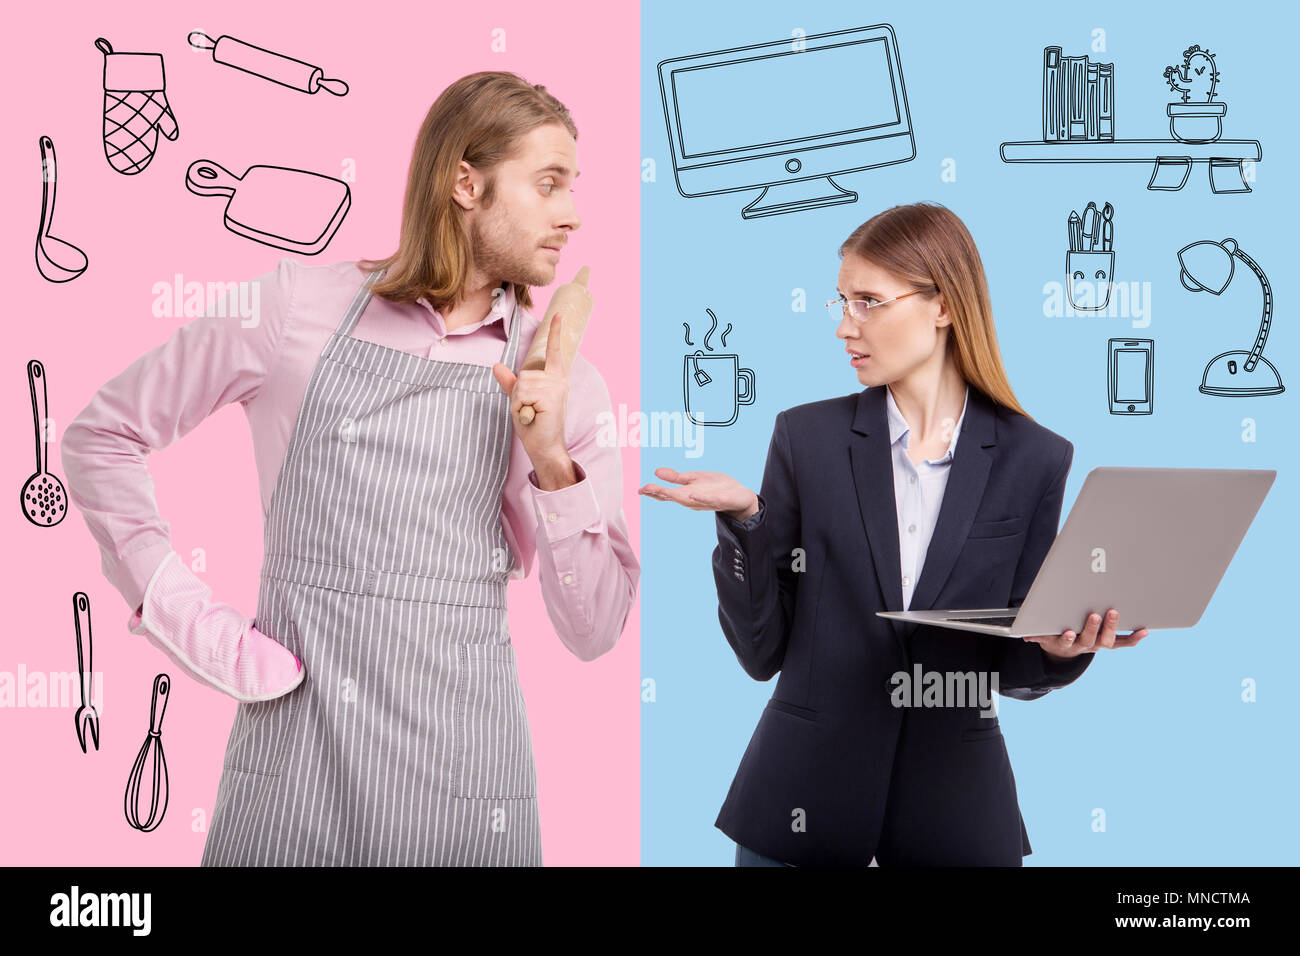 Displeased business woman feeling indignant about her husbands responsibilities - Stock Image